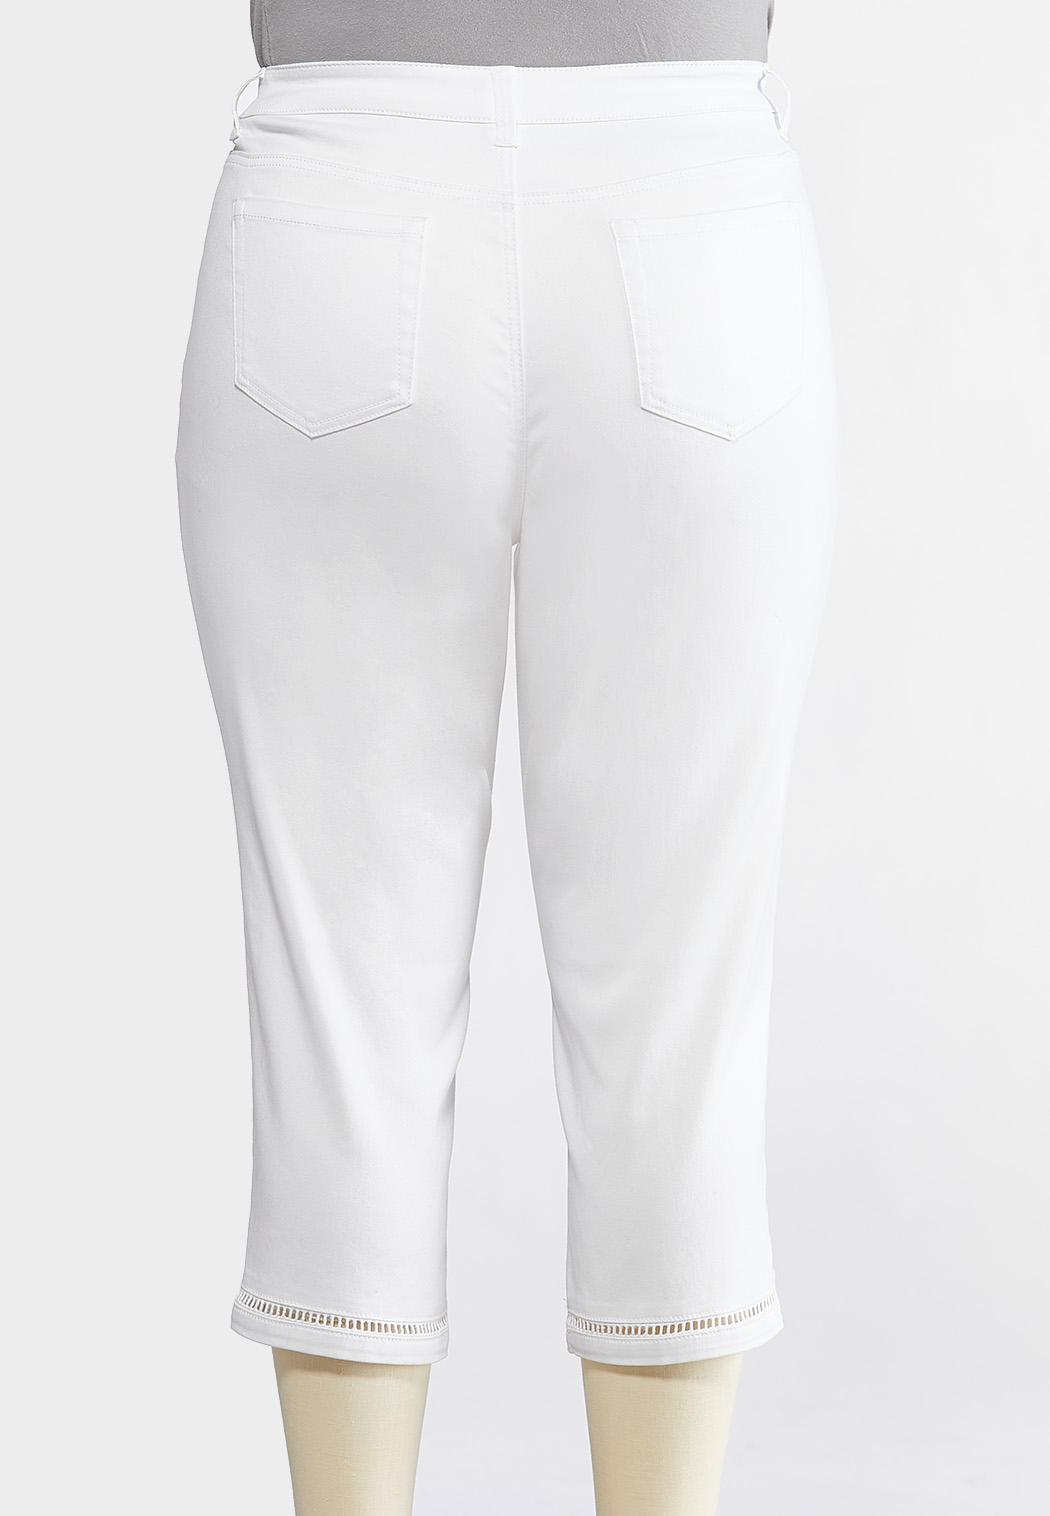 f6c89cd0722 Plus Size White Inset Cropped Jeans Cropped Pants Cato Fashions